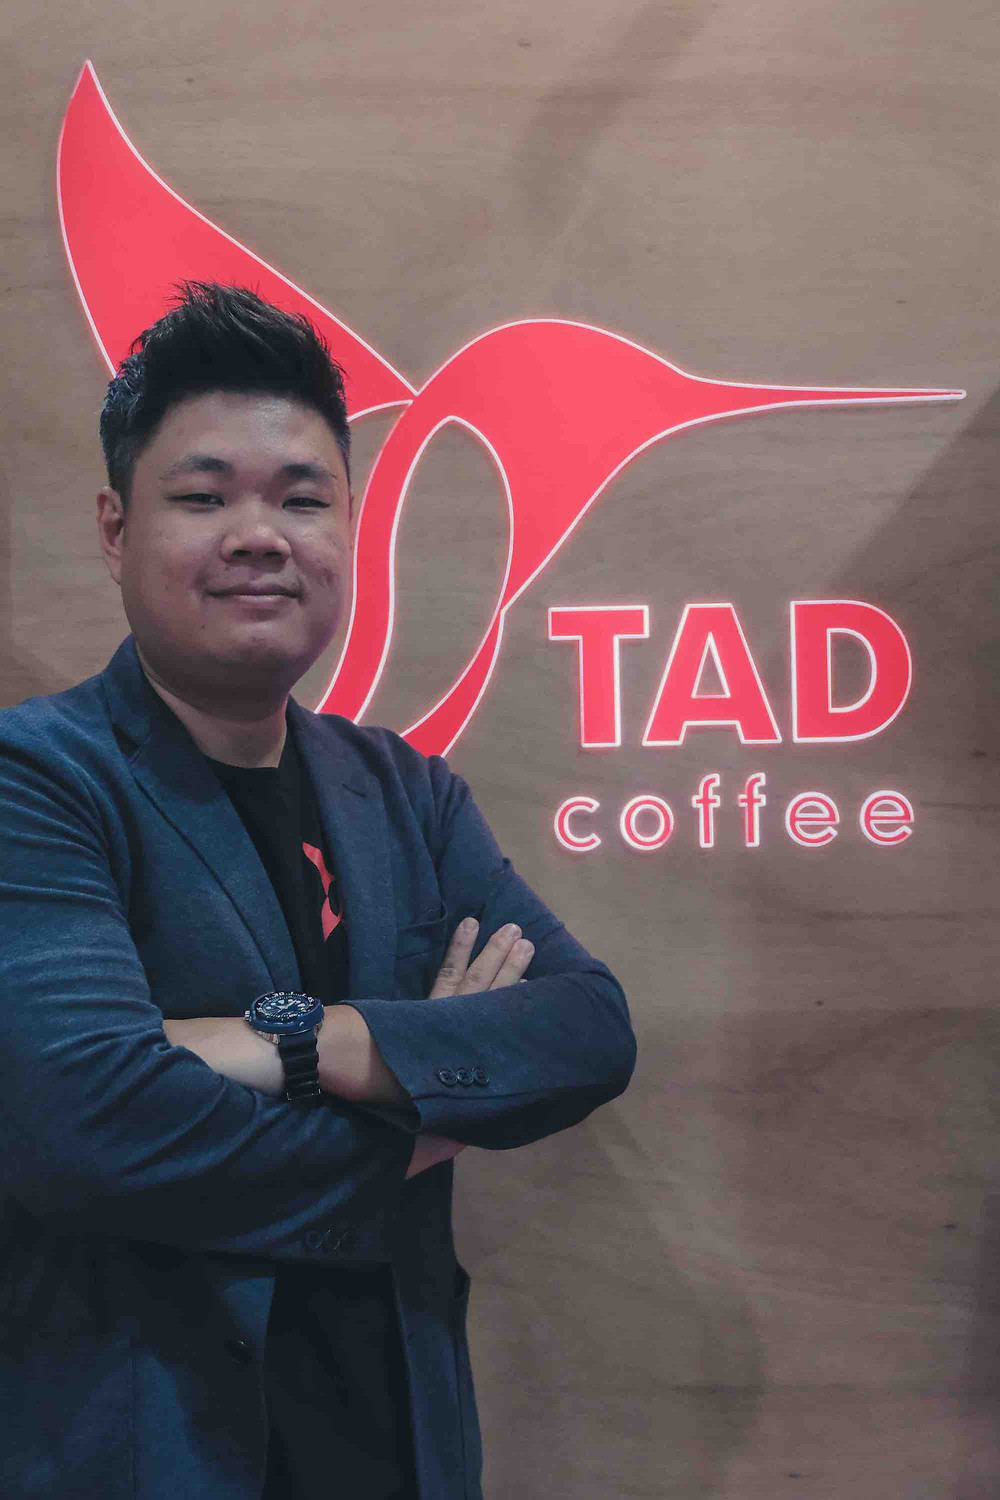 Terence Tan, Tad Coffee